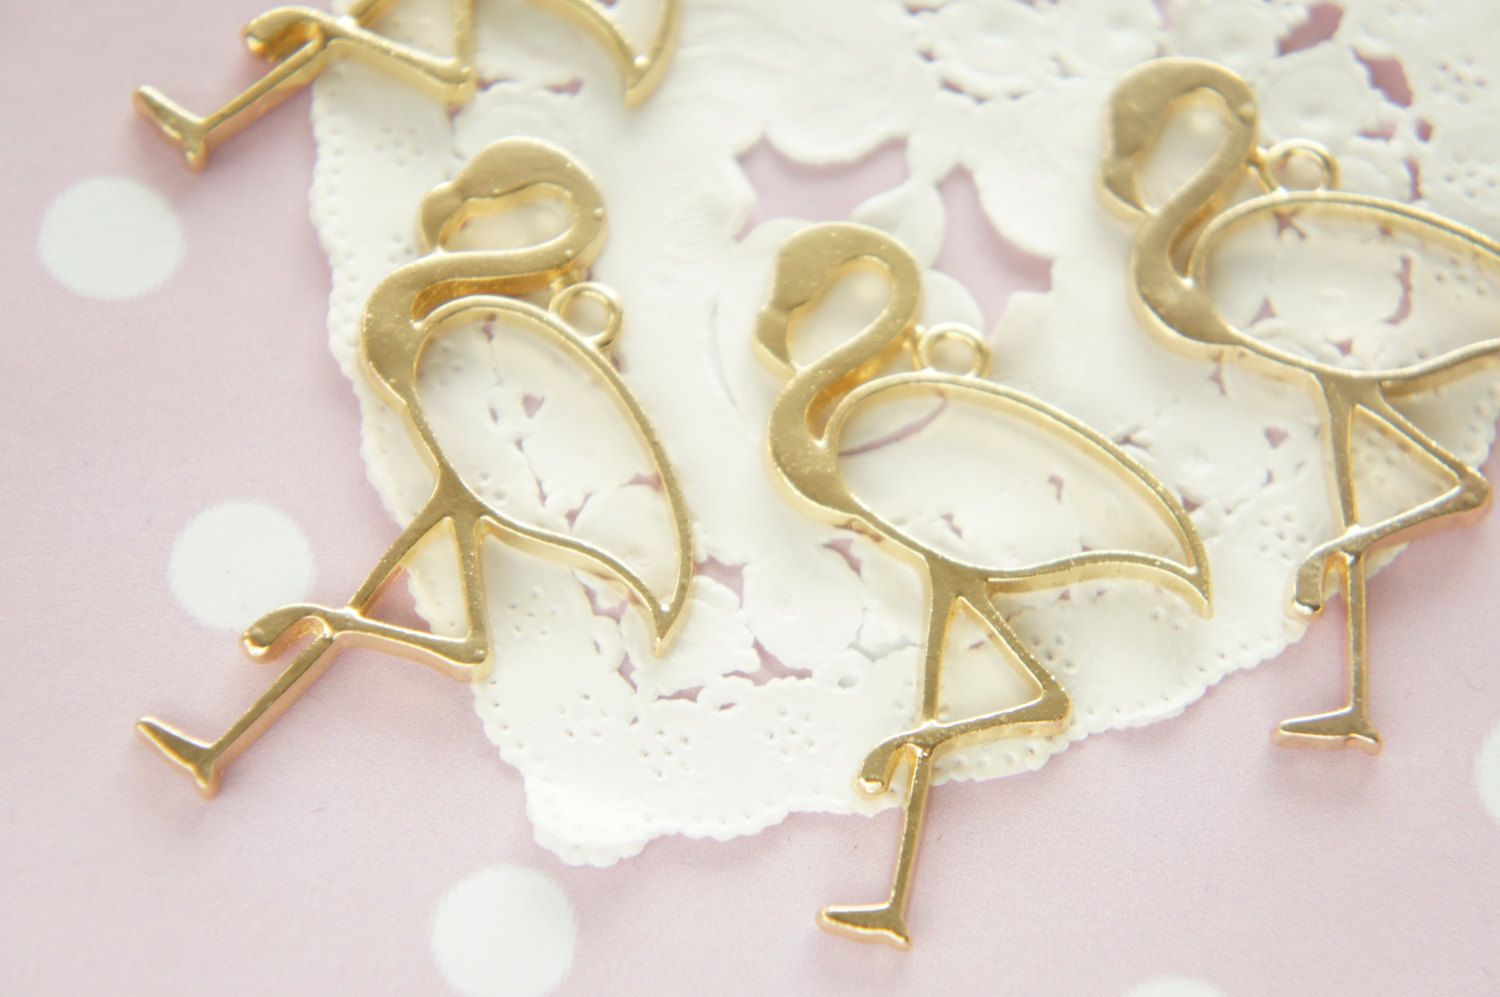 2 pcs  Open Back Bezel Charms for Resin / Flamingo (35mm50mm)  AZ377 by Candydecoholic on Etsy